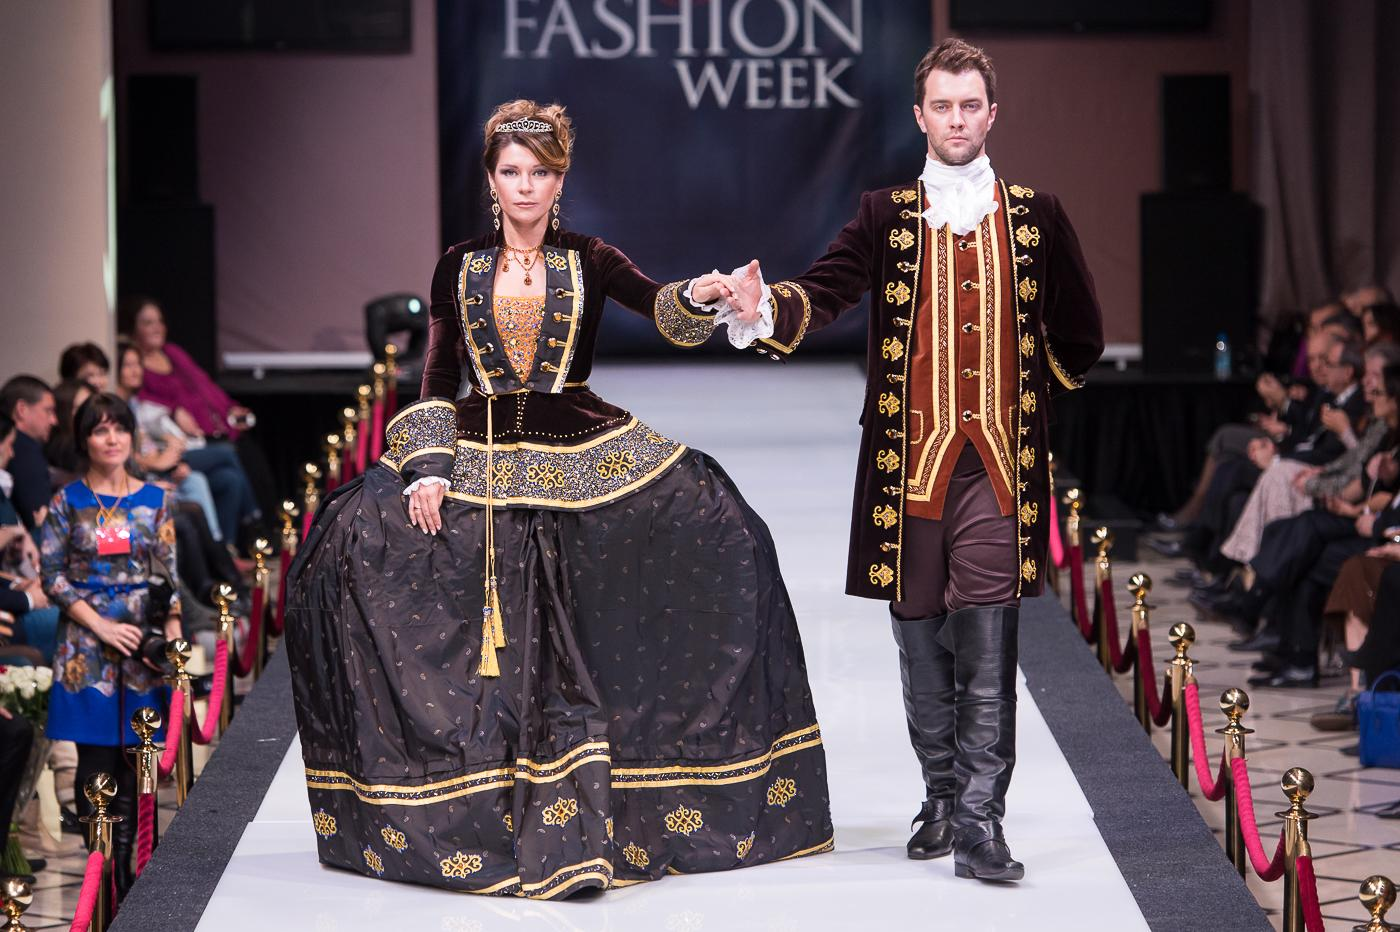 estet-fashion-week-2015-000